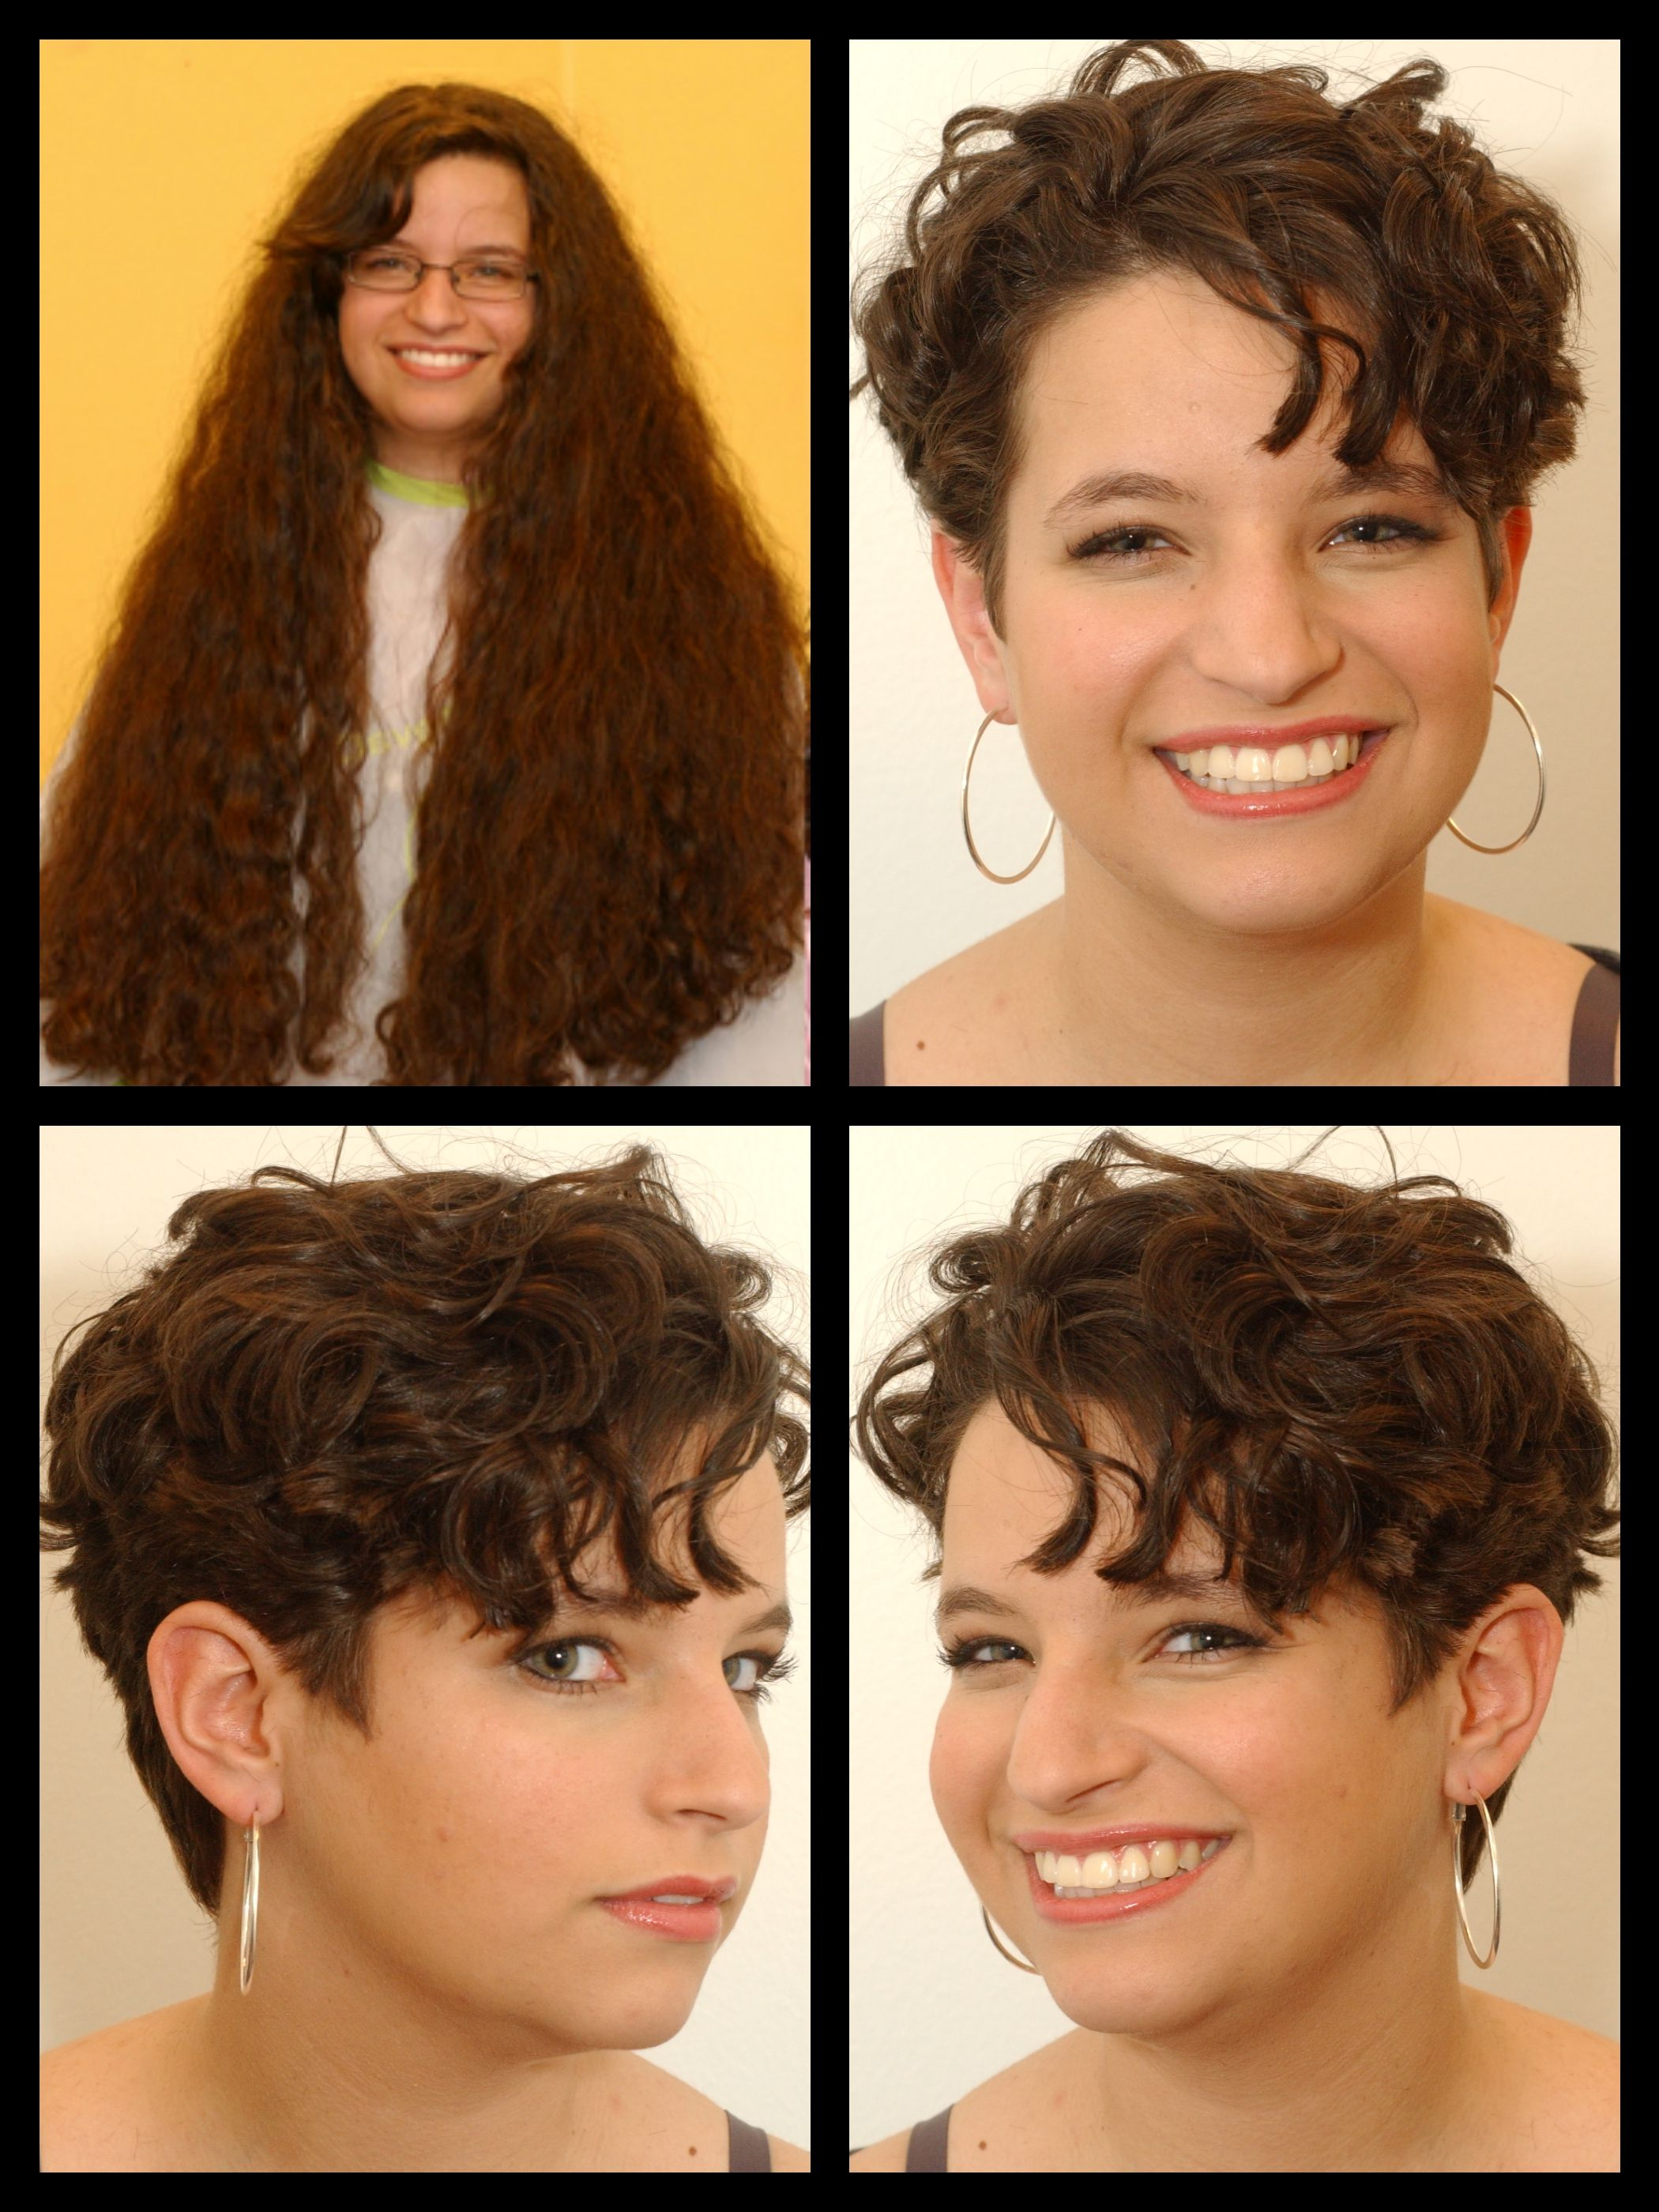 Pin By Christina Carsillo On Before After Curly Hair Styles Permed Hairstyles Short Curly Hair